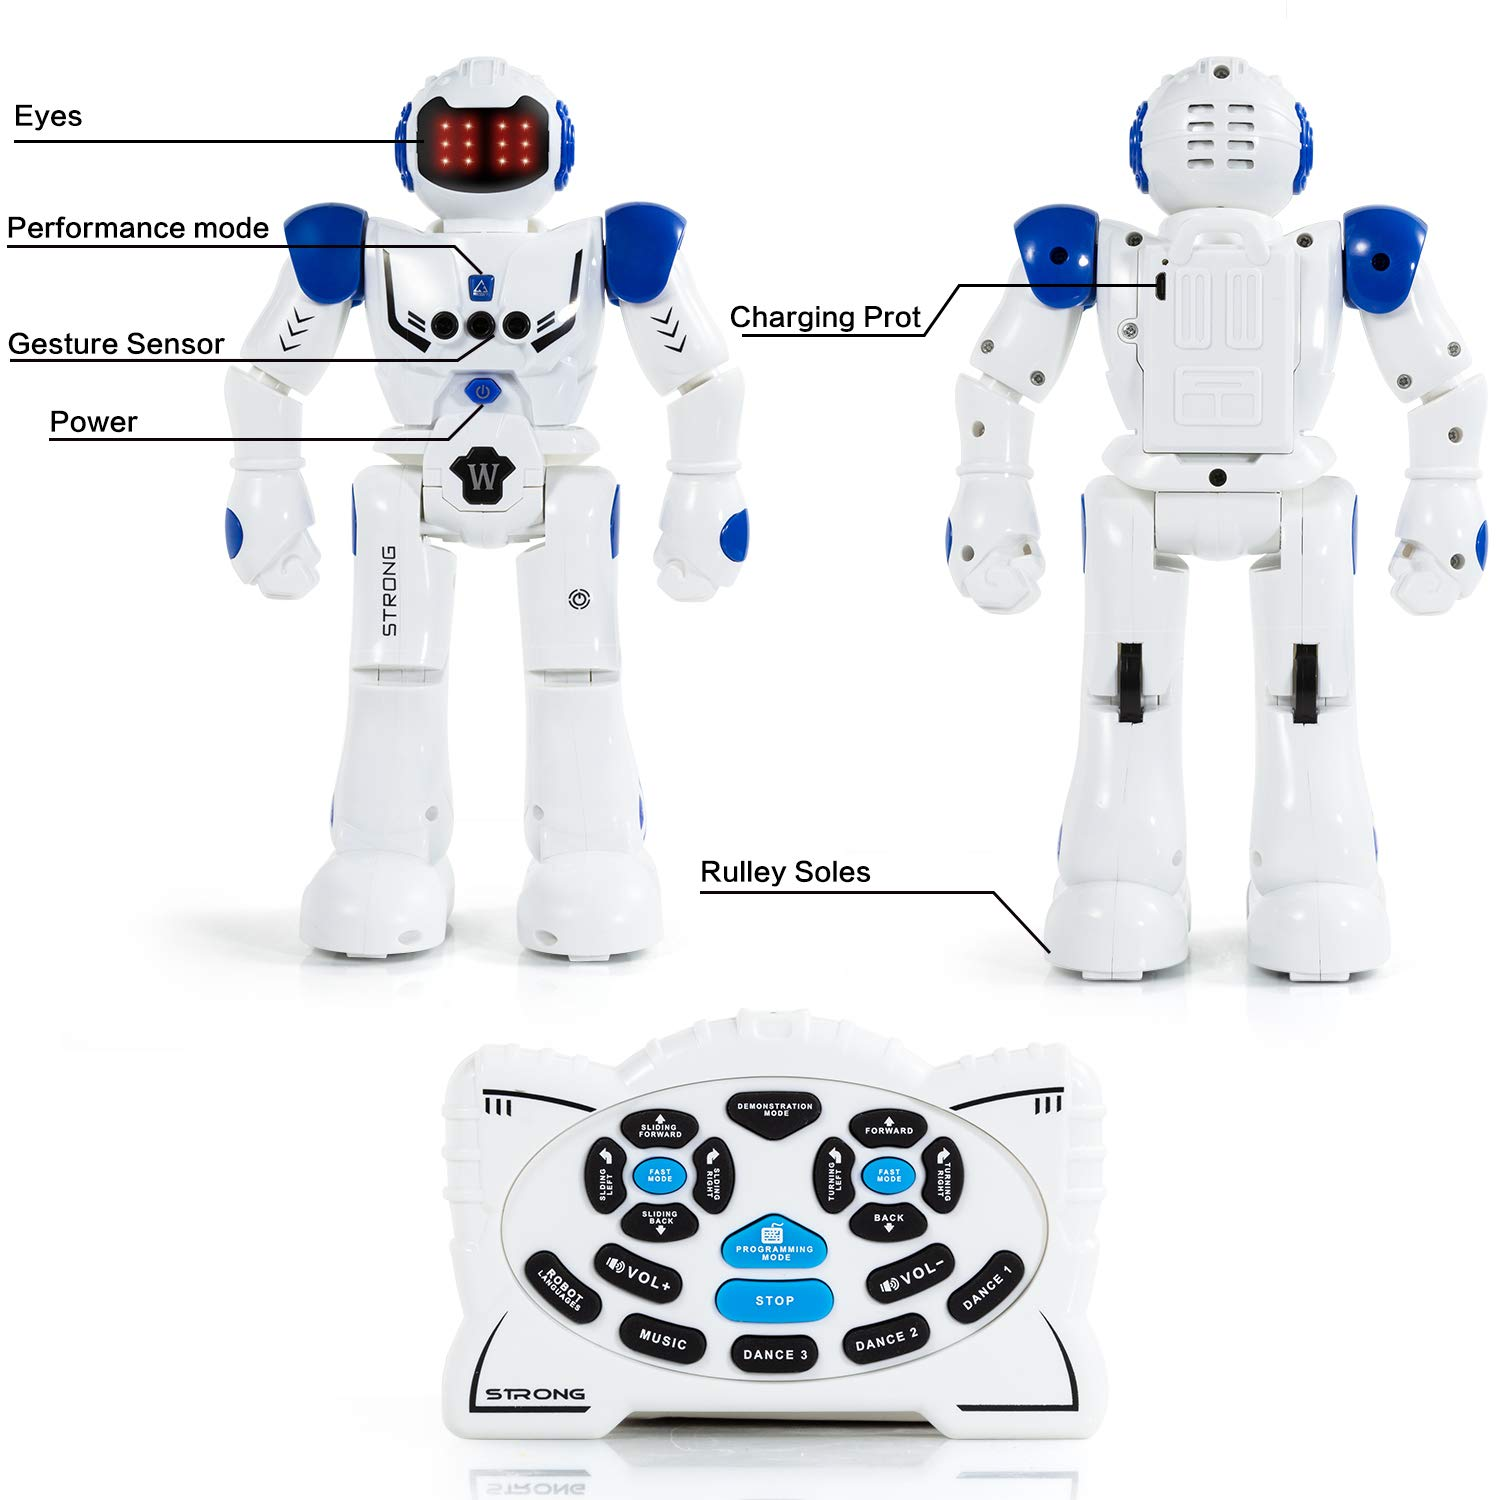 KINFAYV Smart Robot Toy - Remote Control Robot, RC Programmable Educational Robot for Kids Birthday Gift Present, Interactive Walking Singing Dancing Smart Intelligent Robotics for Kids by KINFAYV (Image #3)